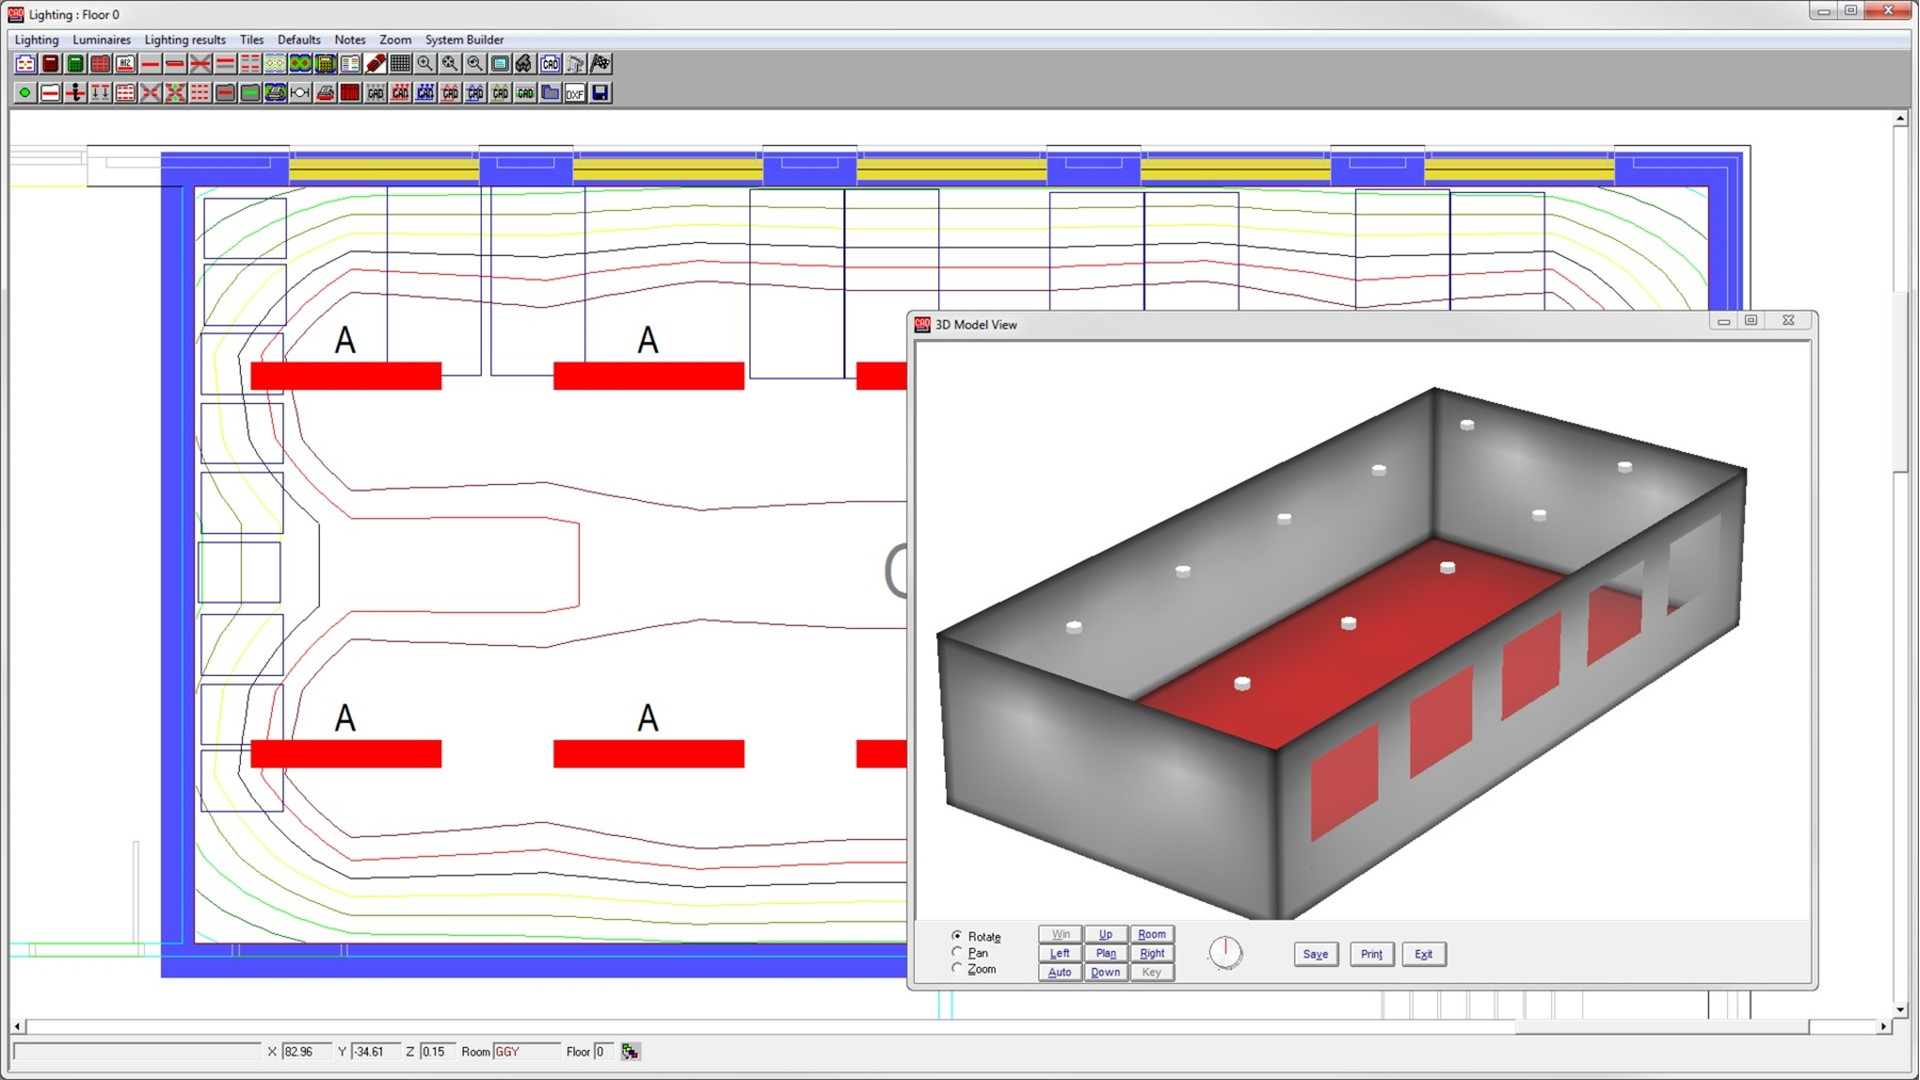 Uk building electrical design analysis software hevacomp for Commercial building design software